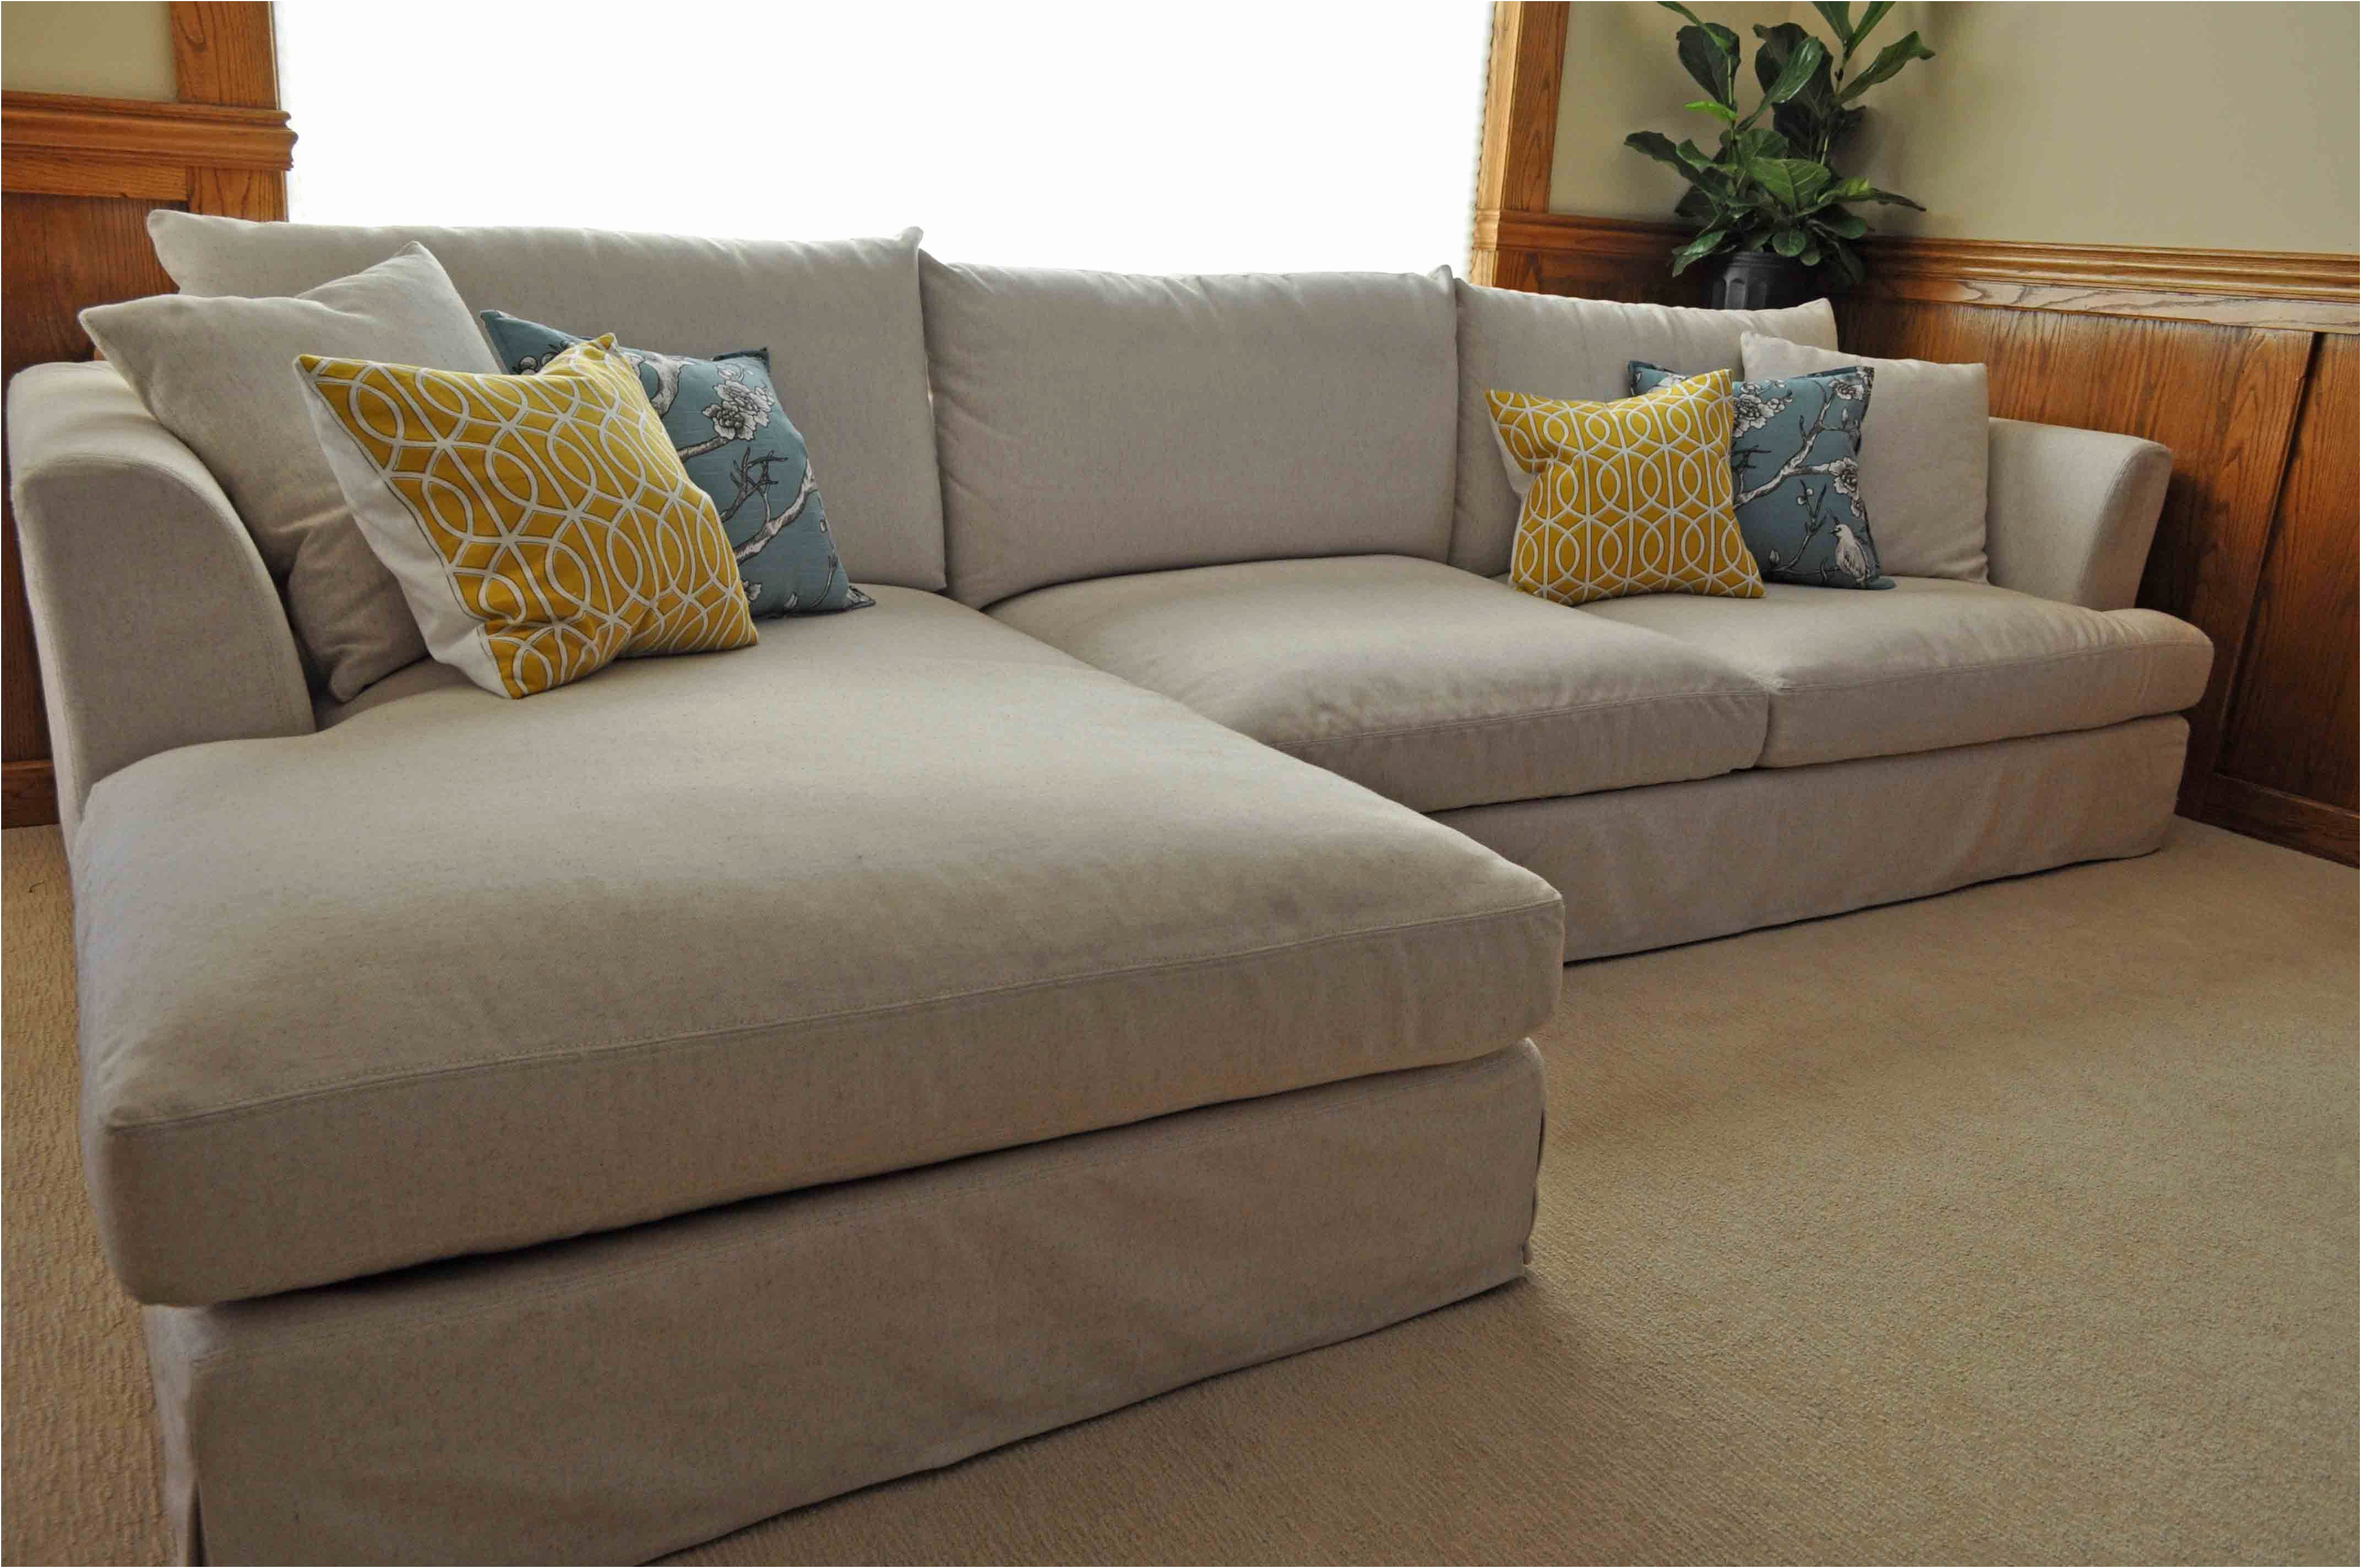 awesome cheap sectional sofas for sale photograph-Modern Cheap Sectional sofas for Sale Gallery